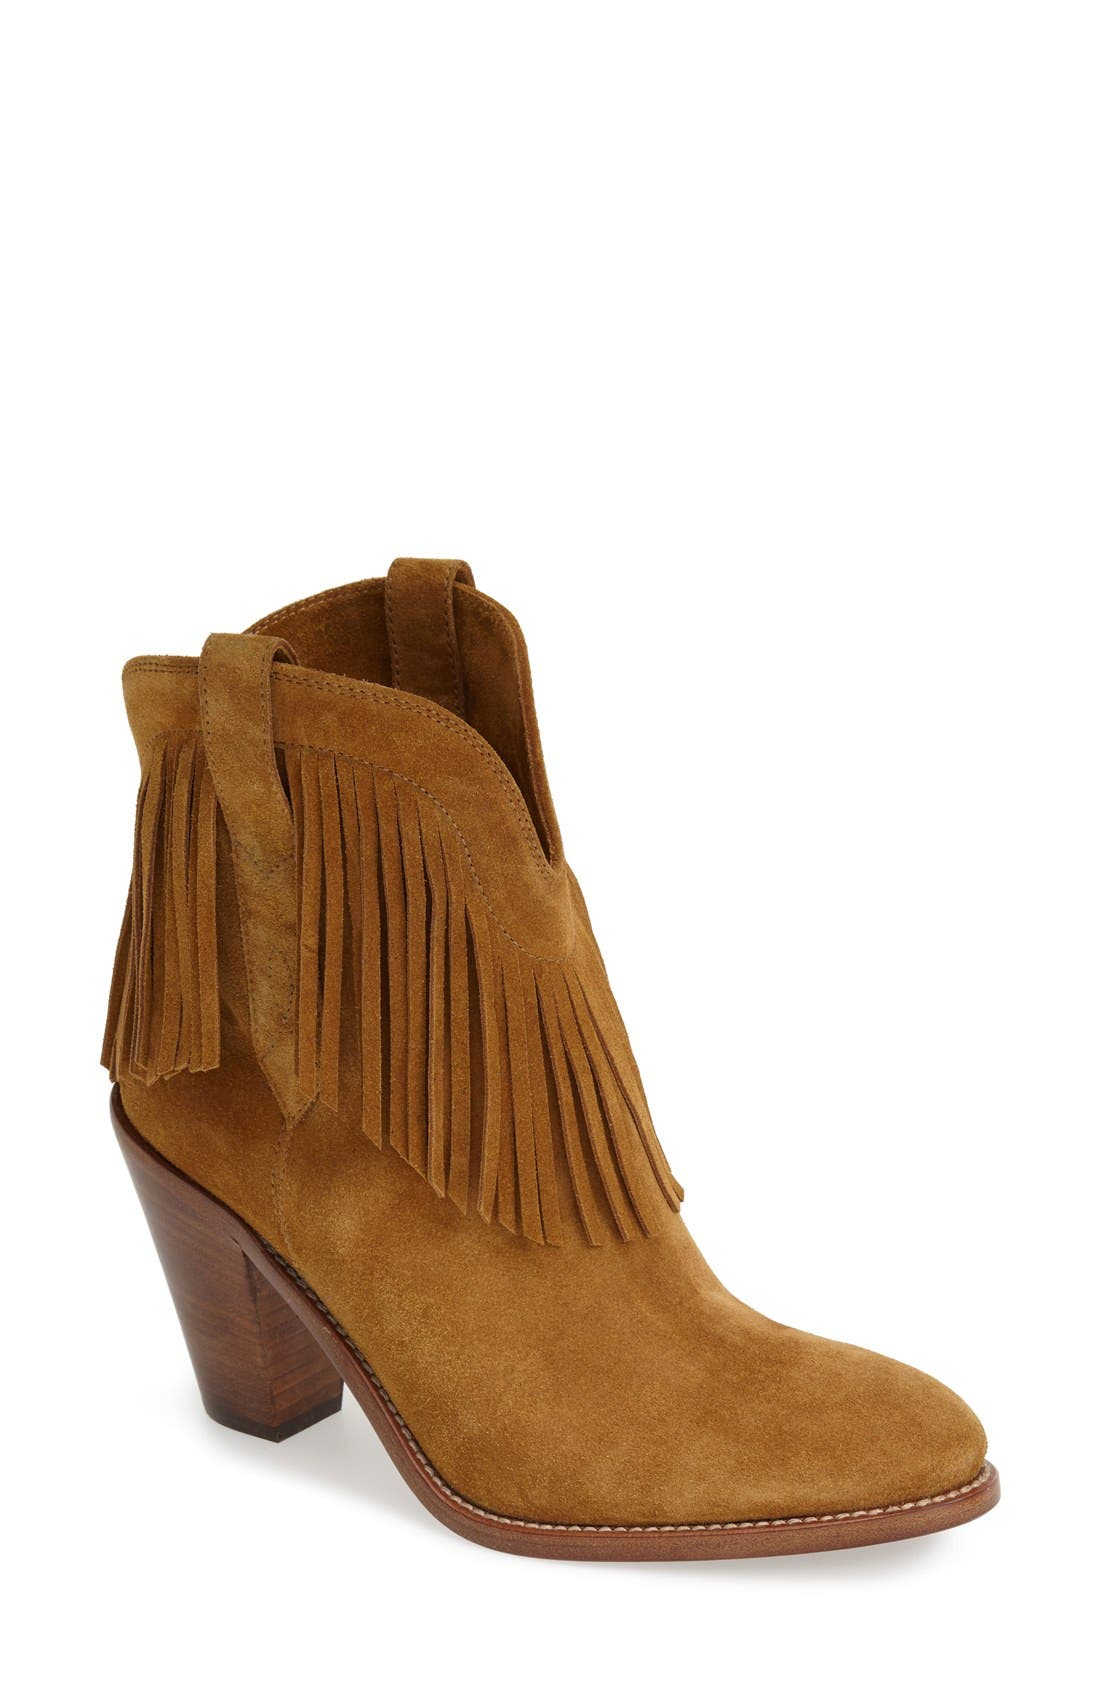 Alternate Image 1 Selected - Saint Laurent 'New Western' Fringe Boot (Women)